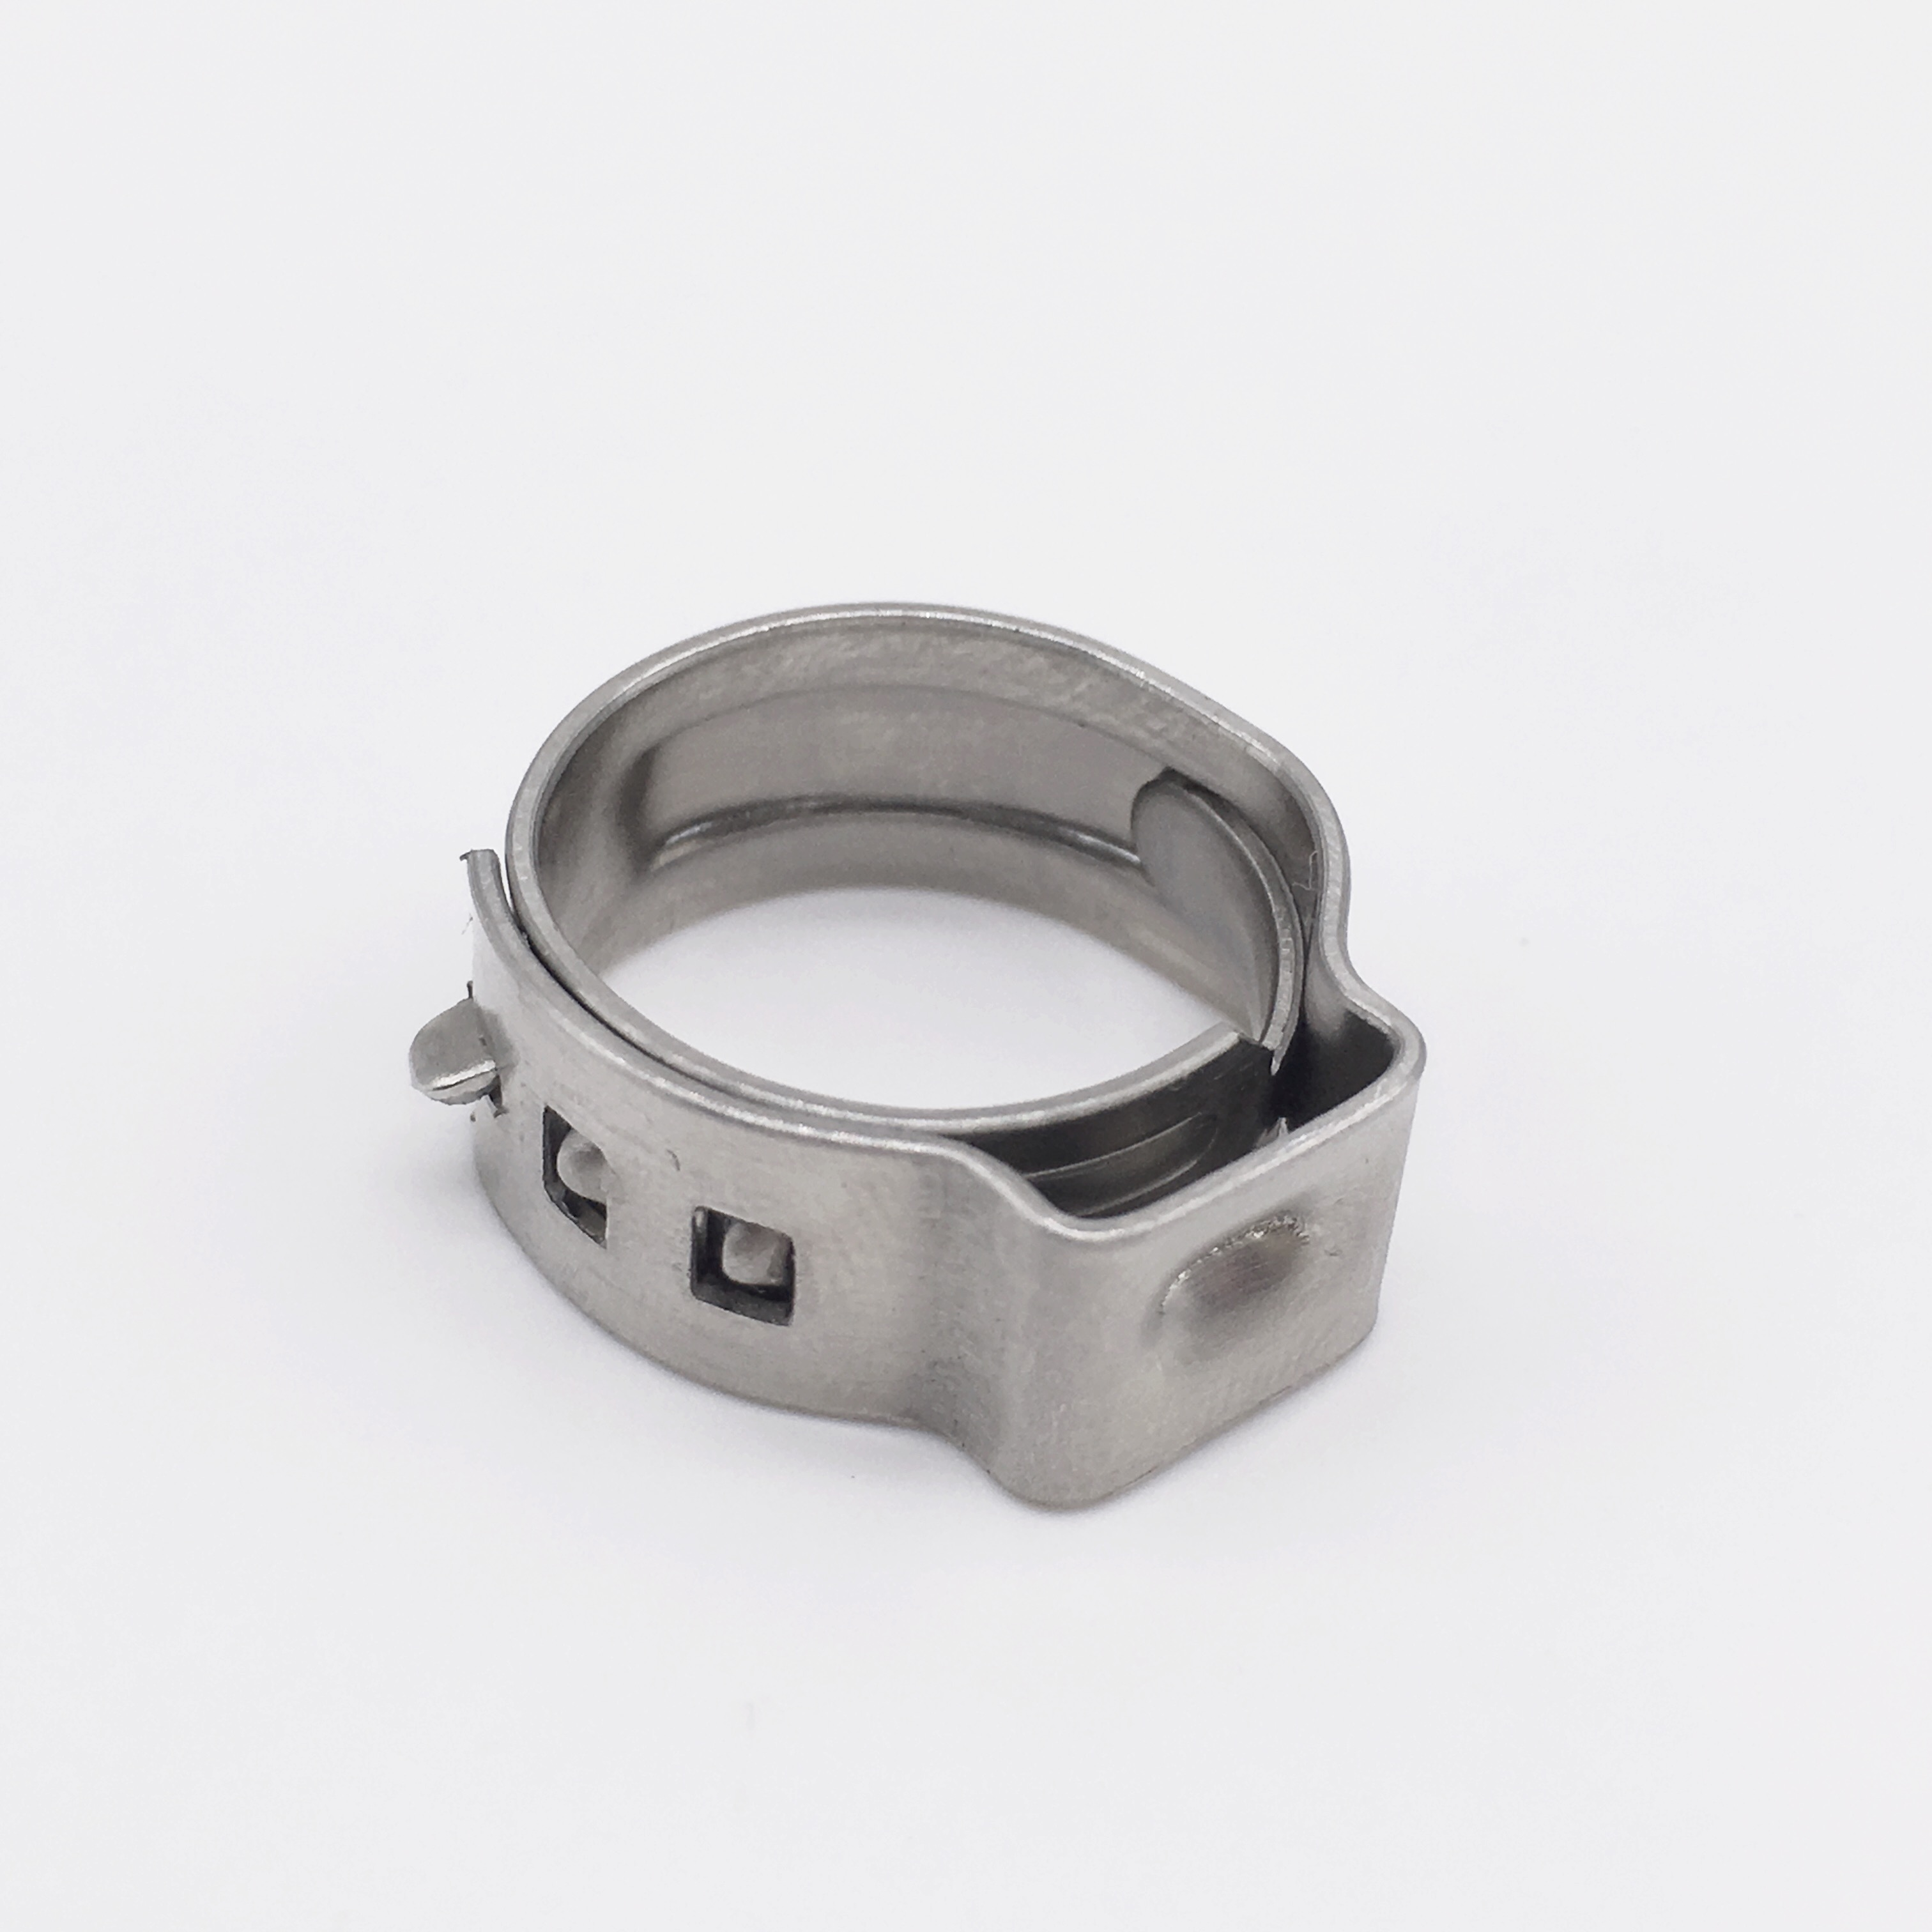 Pinch Clamps Stepless Single Ear Tight-Seal Vibration-Resistant for Firm Hose and Tube 304 Stainless SteelPinch Clamps Stepless Single Ear Tight-Seal Vibration-Resistant for Firm Hose and Tube 304 Stainless Steel